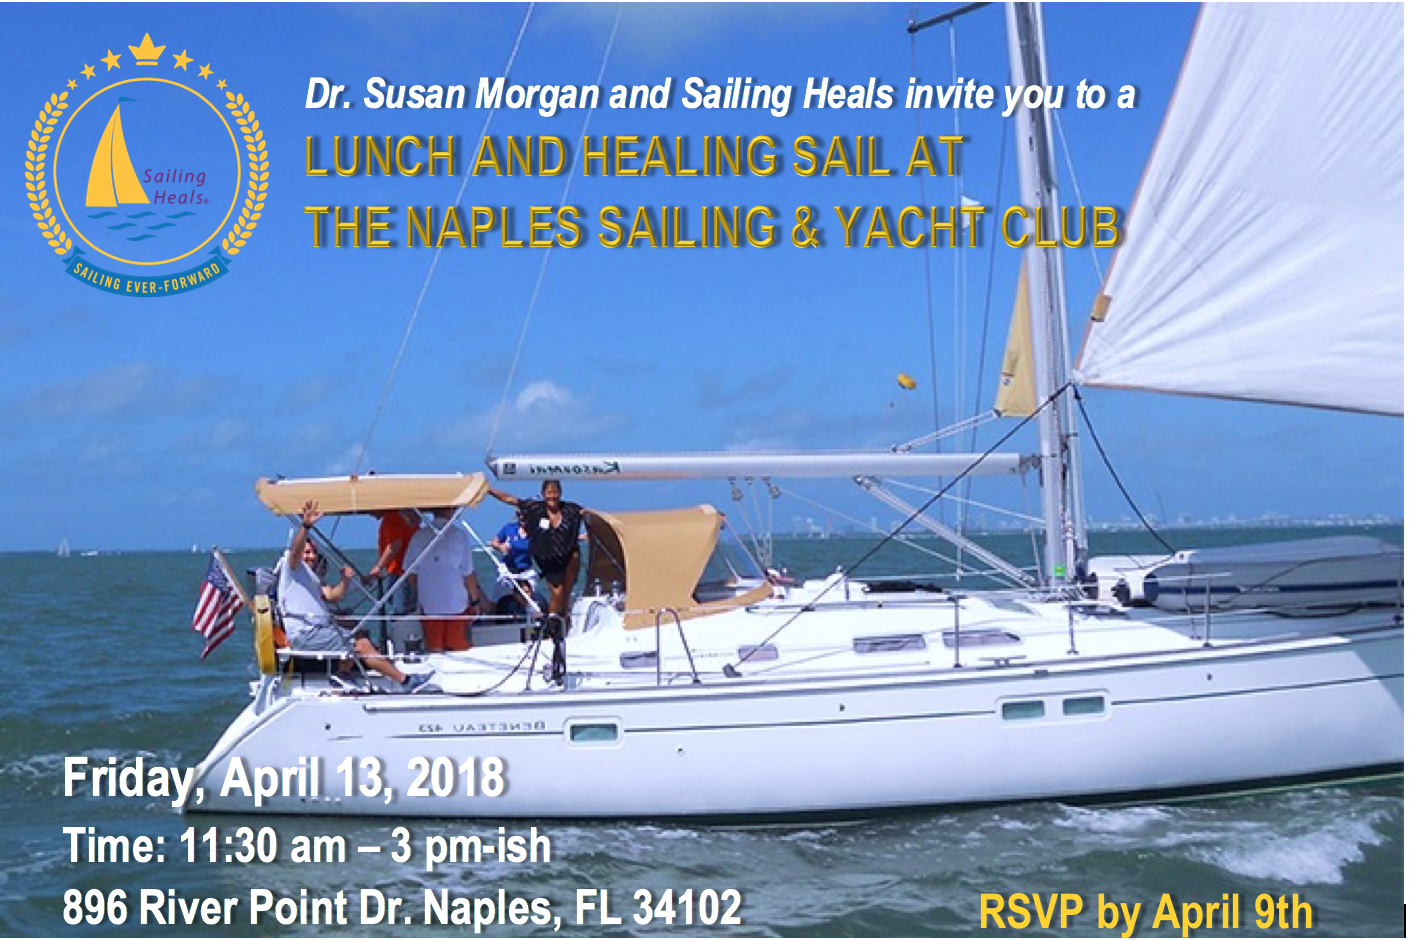 4/13/18 Naples Sailing and Yacht Club